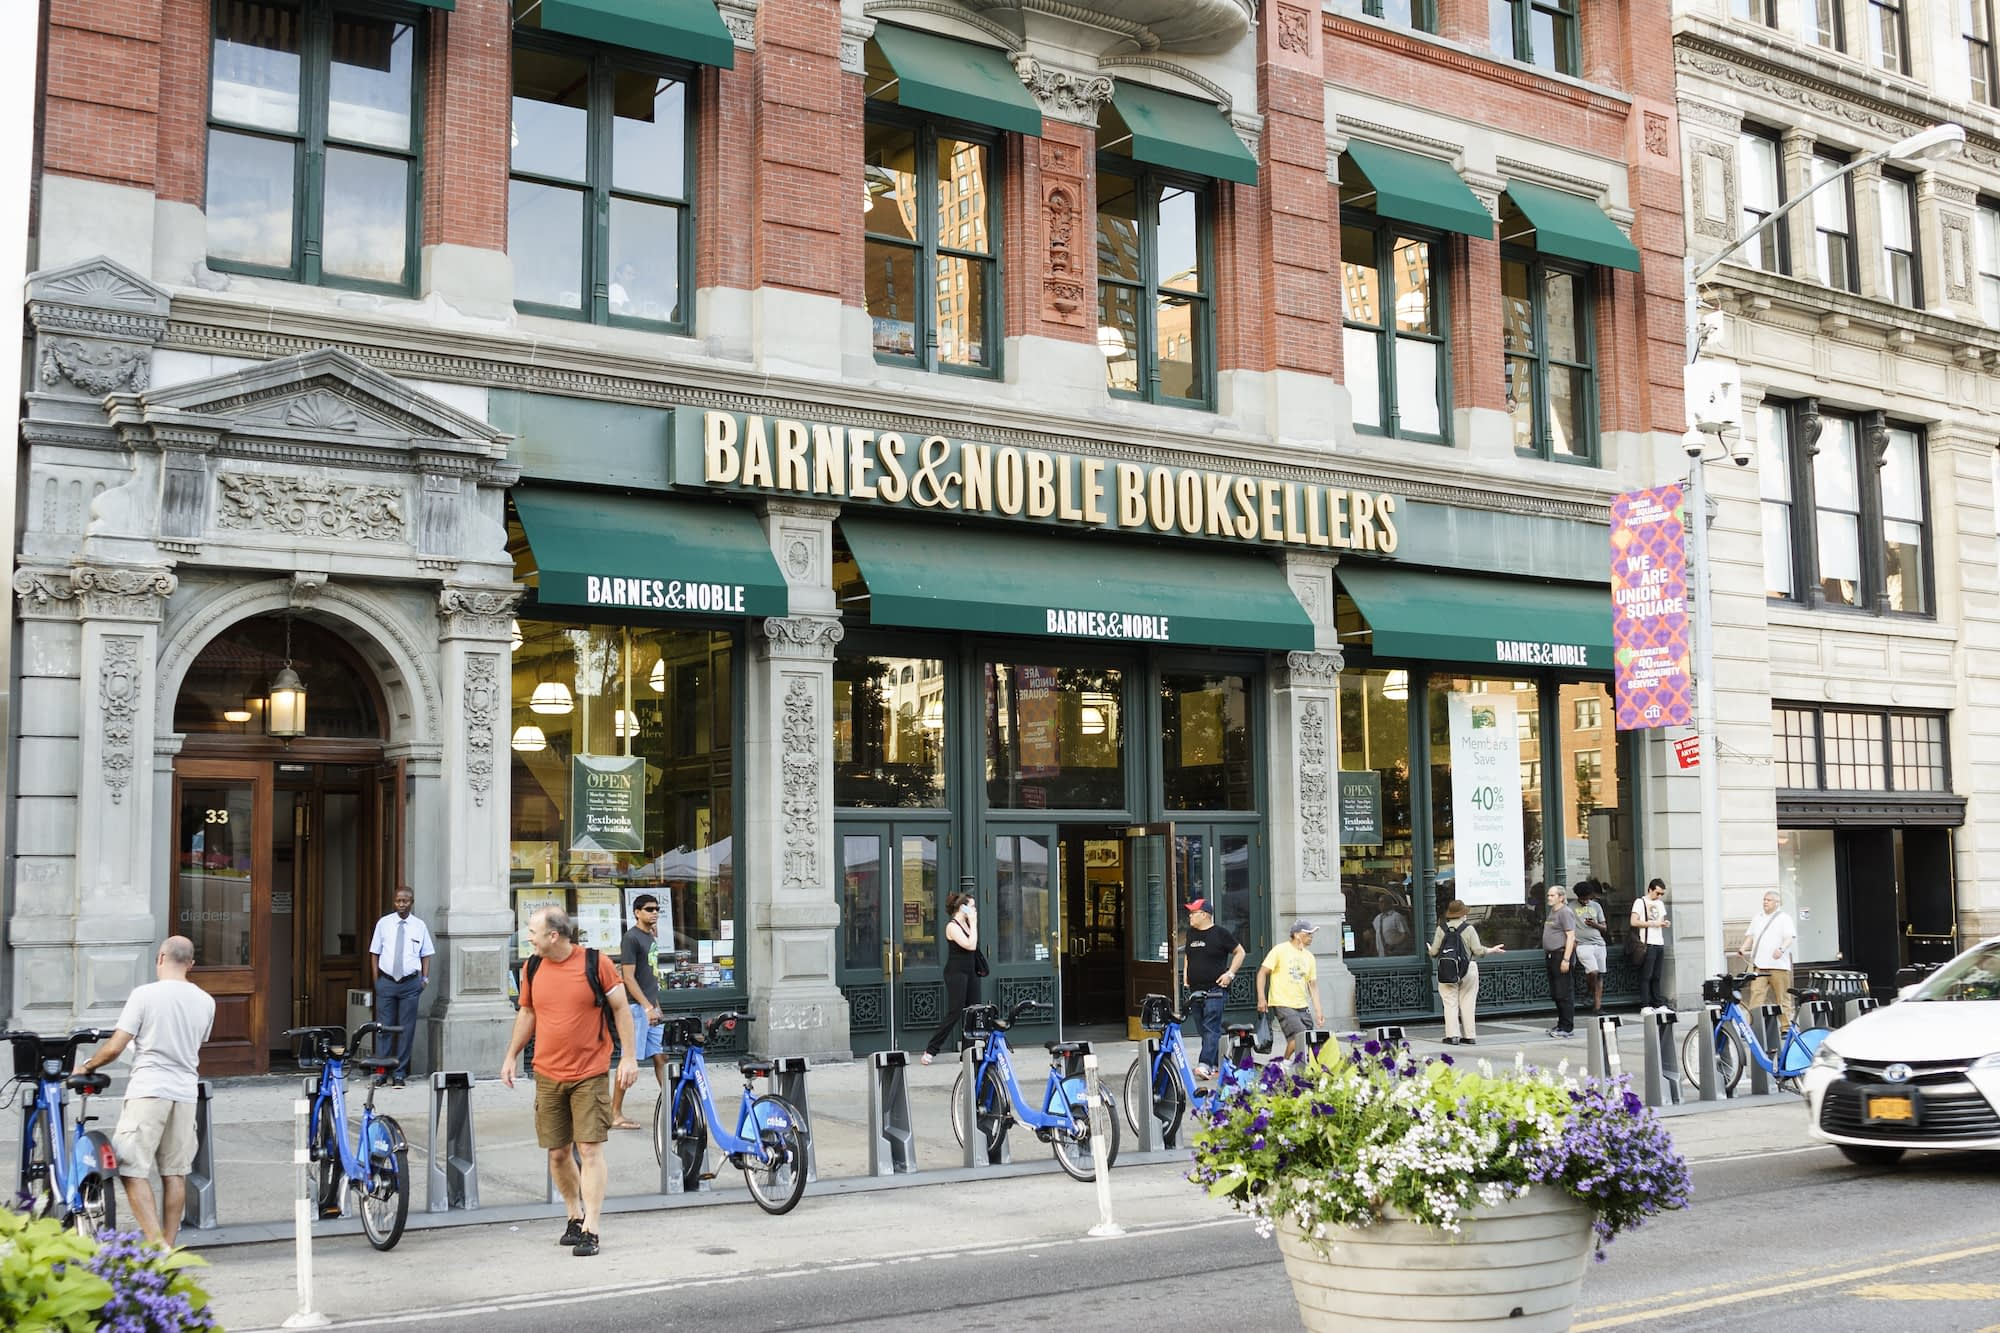 A Barnes and Noble store across the street from Union Square Park. People can be seen.